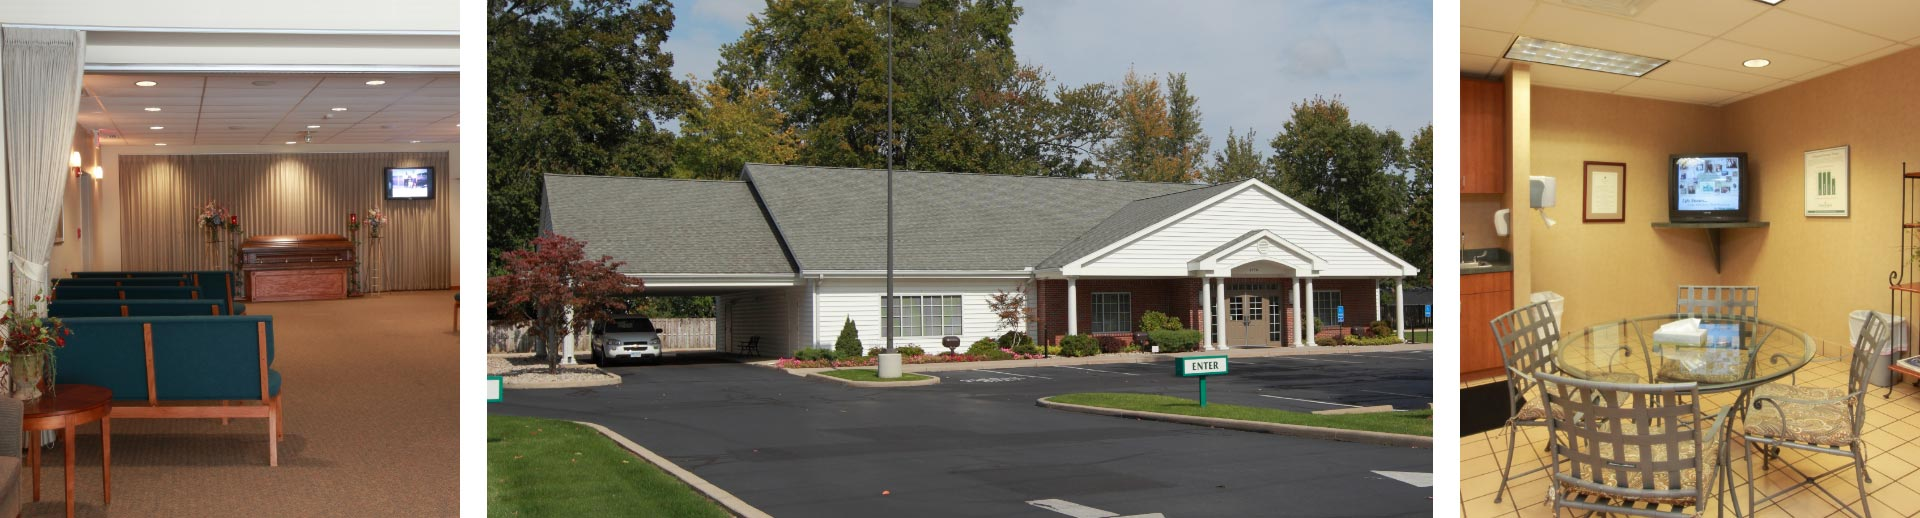 Funeral-Home-Northwest-Toledo-OH